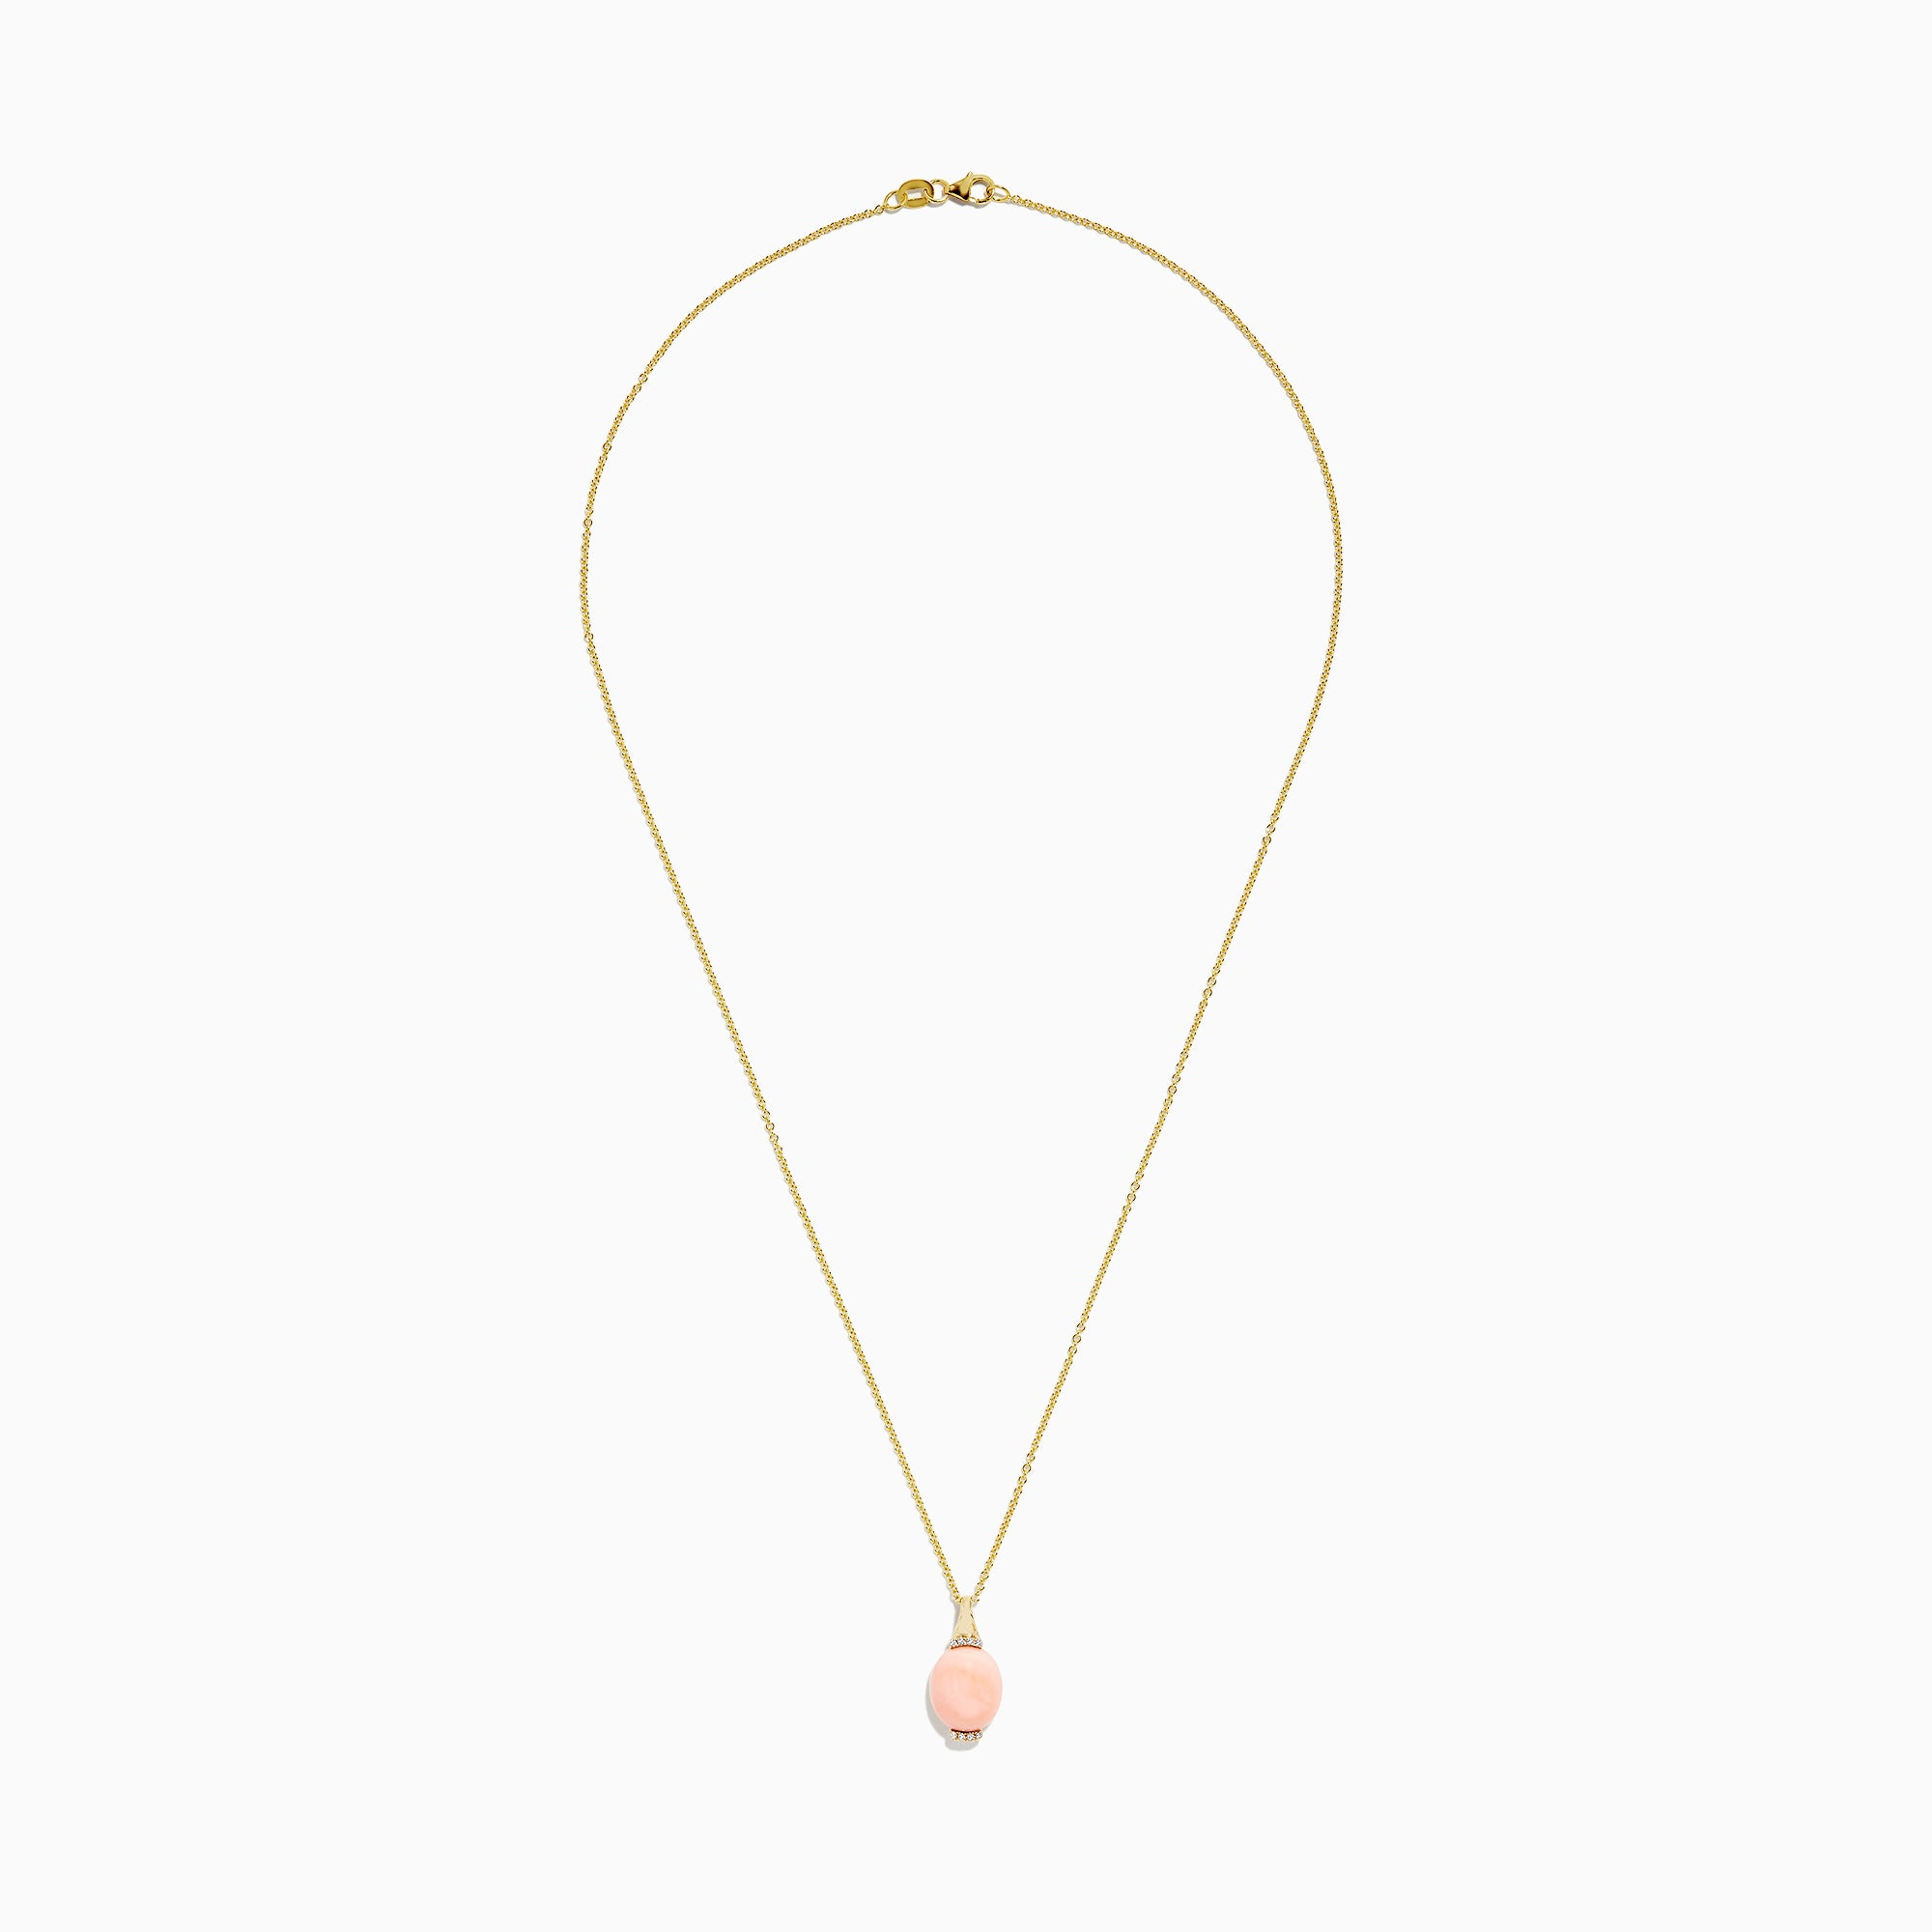 Effy 14K Yellow Gold Coral and Diamond Pendant, 4.25 TCW